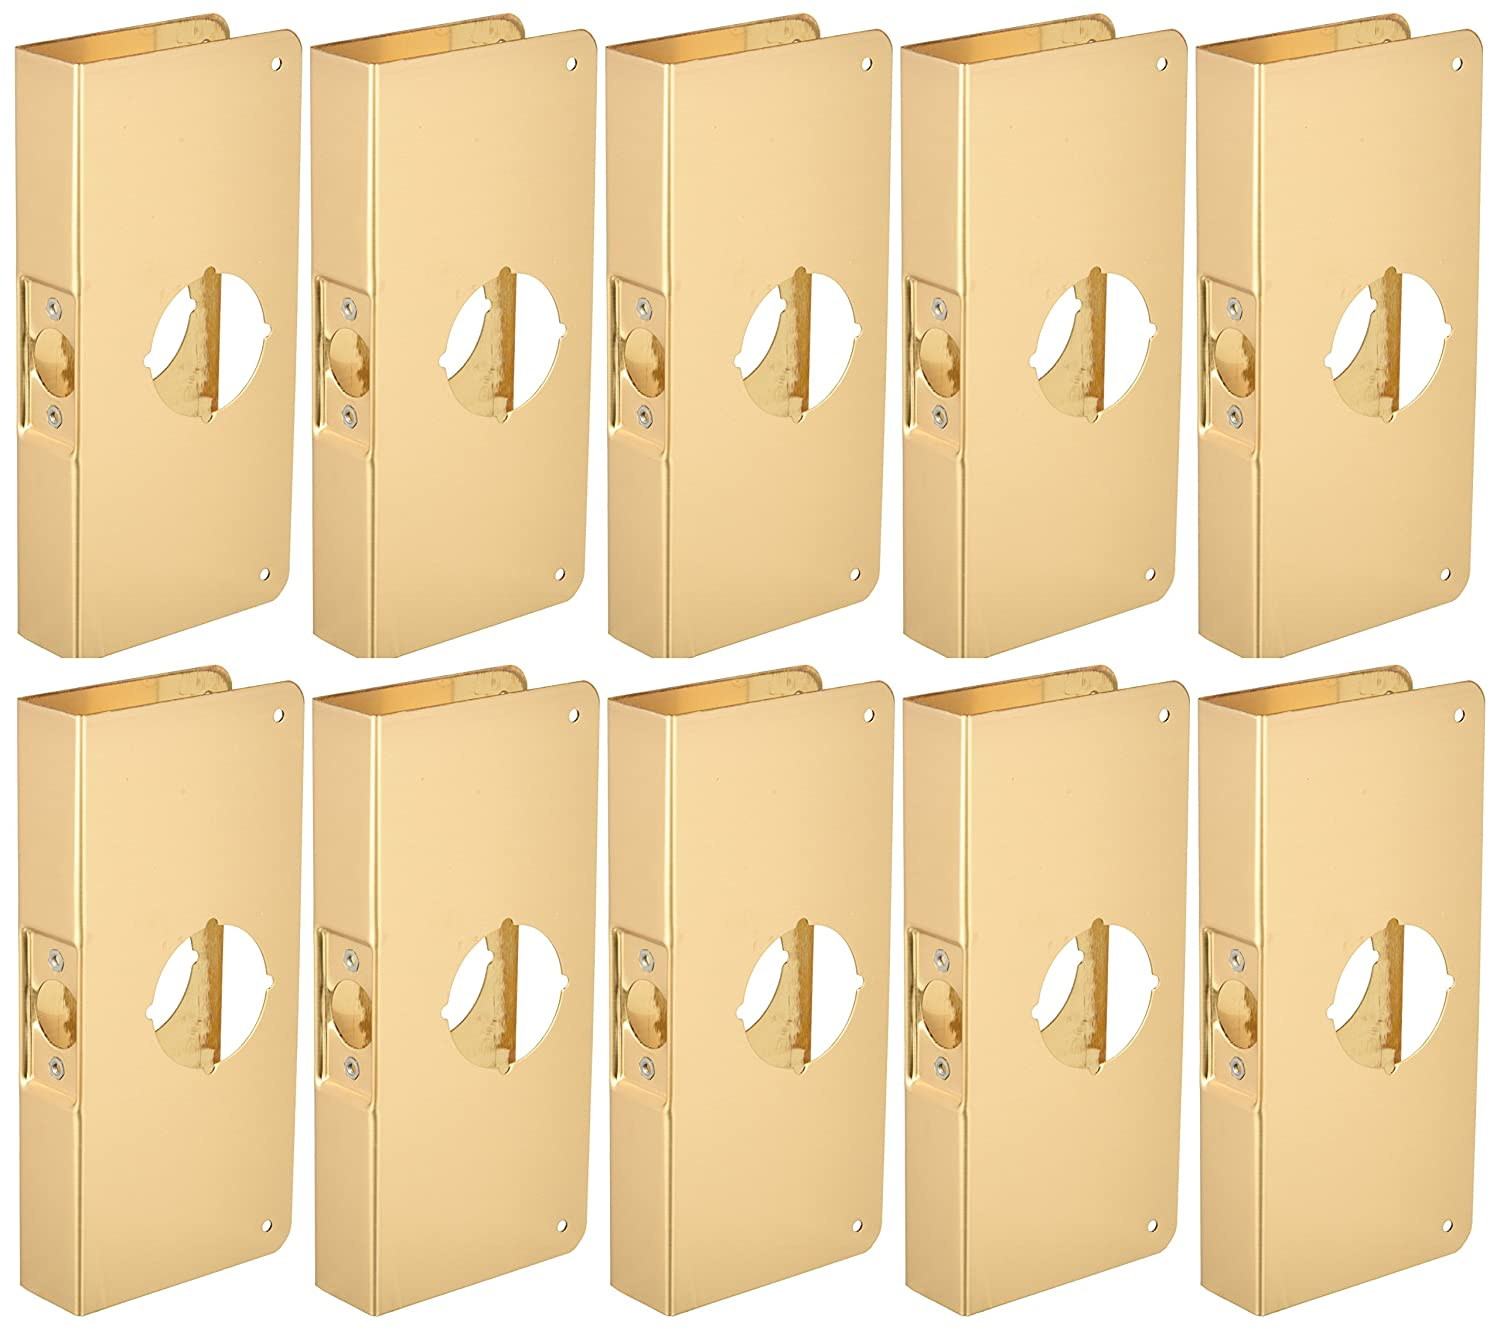 for Cylindrical Door Locks 4 Width x 9 Height Don-Jo 3-CW 22 Gauge Stainless Steel Classic Wrap-Around Plate Pack of 10 Polished Brass Finish